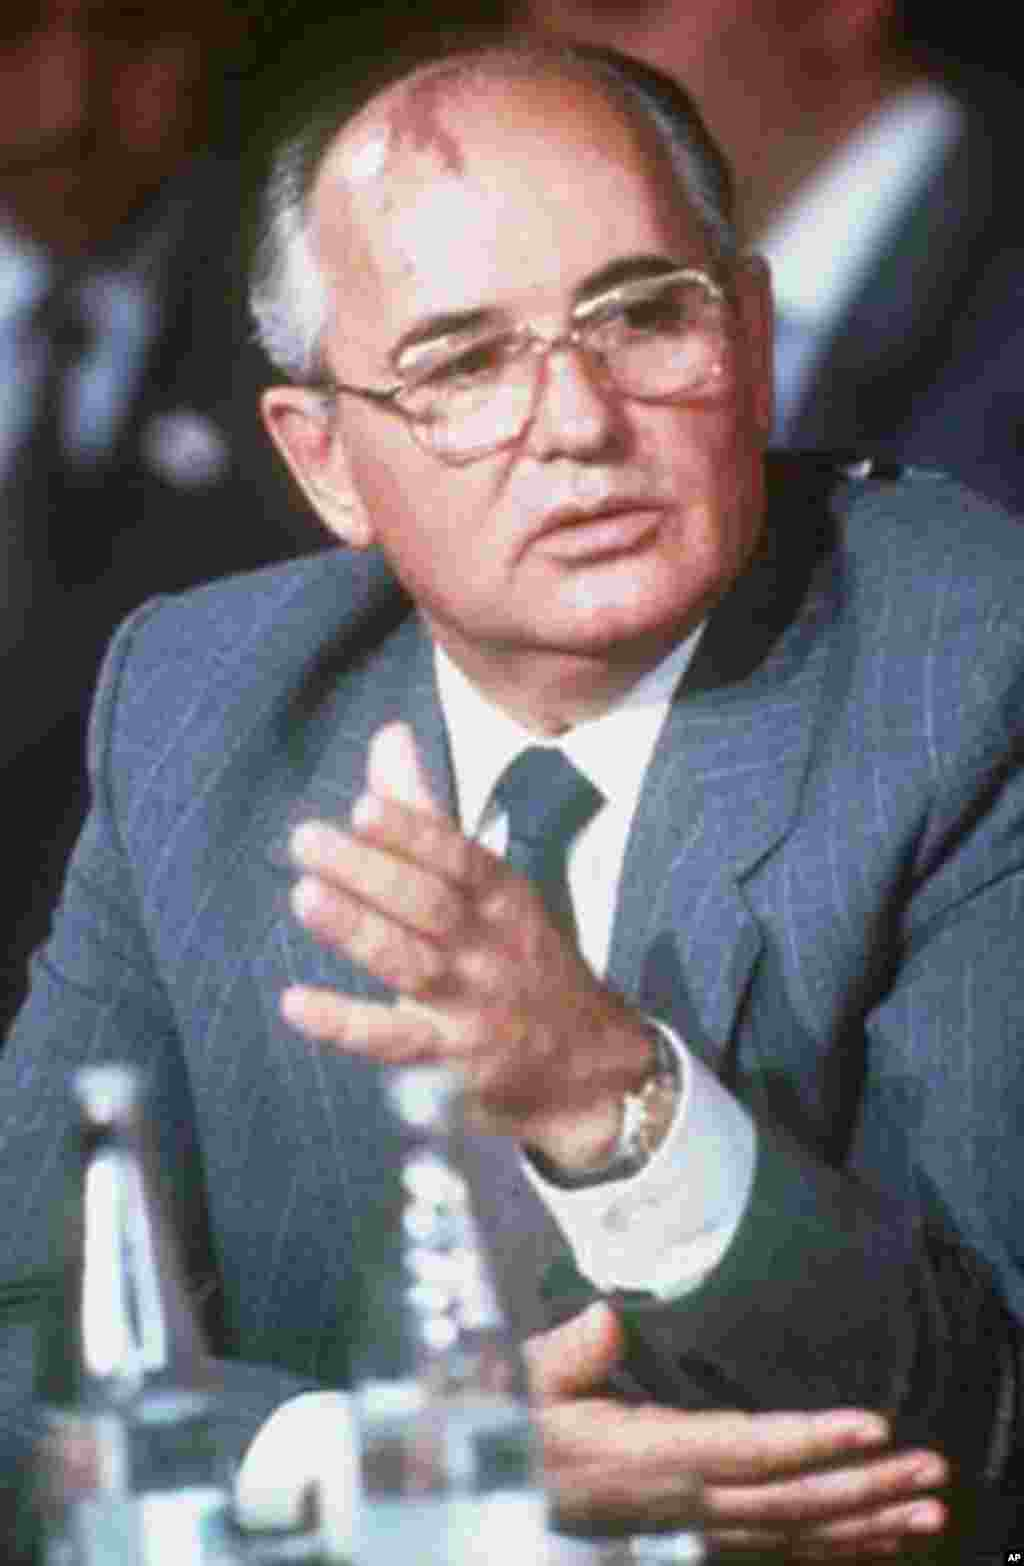 March 11, 1985: Mikhail Gorbachev becomes president of the Soviet Union at 54 years old. He introduces glasnost and perestroika in an effort to overcome economic and political problems. (AP)